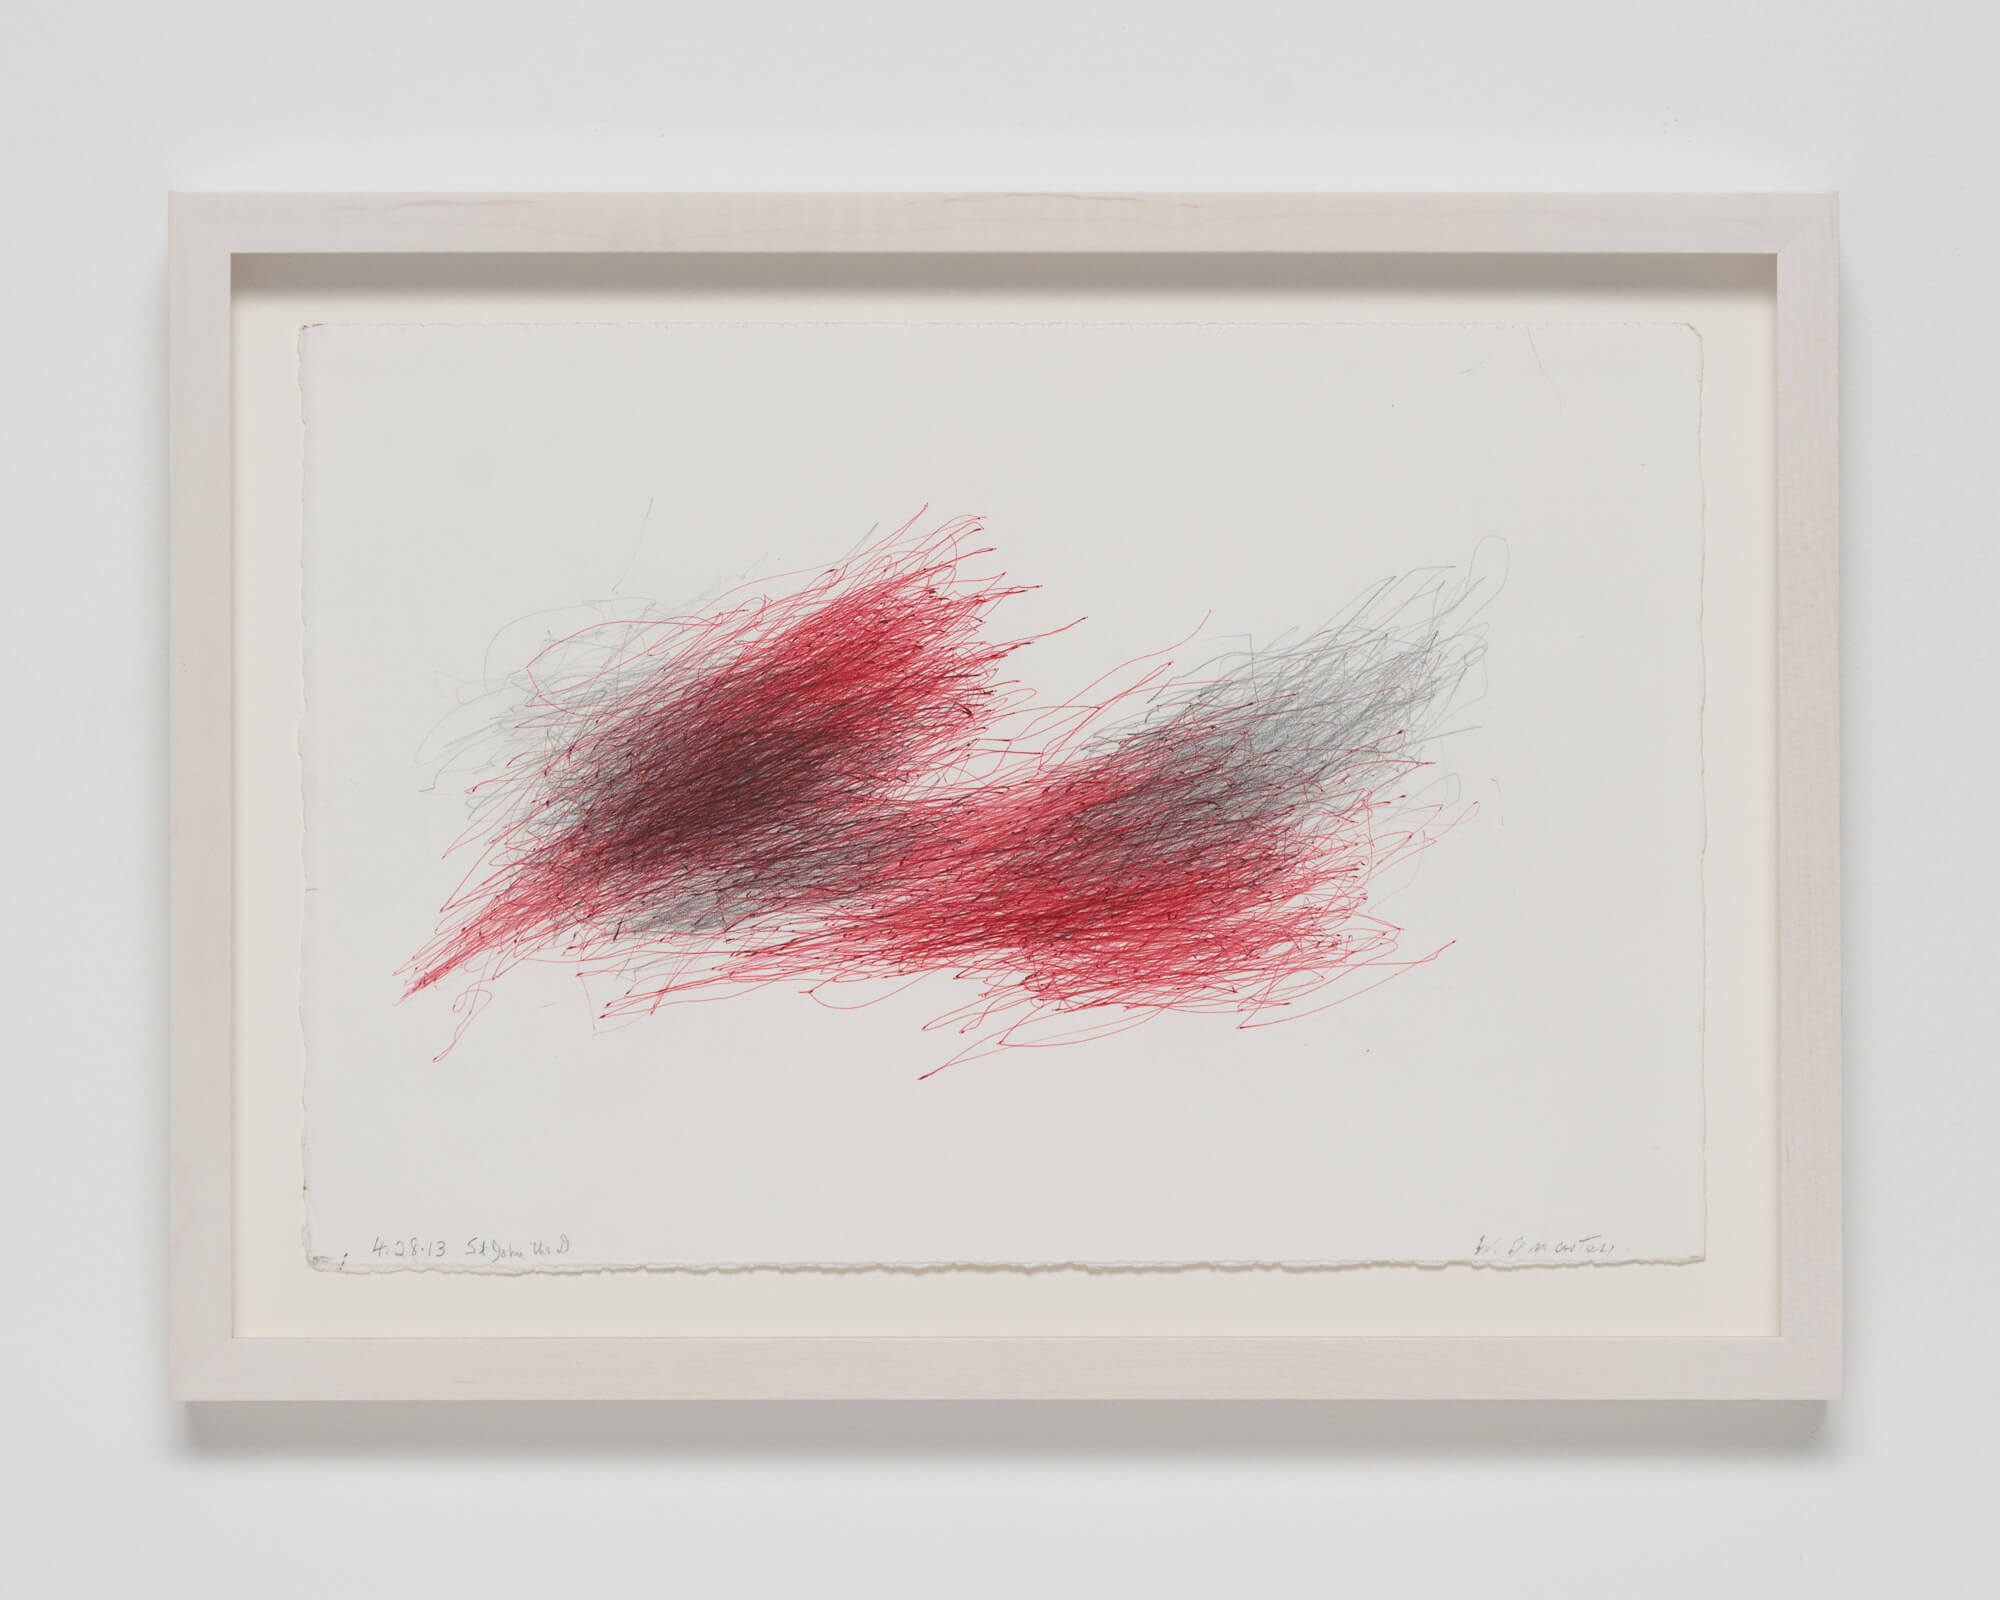 Anastasi, Untitled (Concert Drawing, St. John the D), 2013 (WA 13.002) A